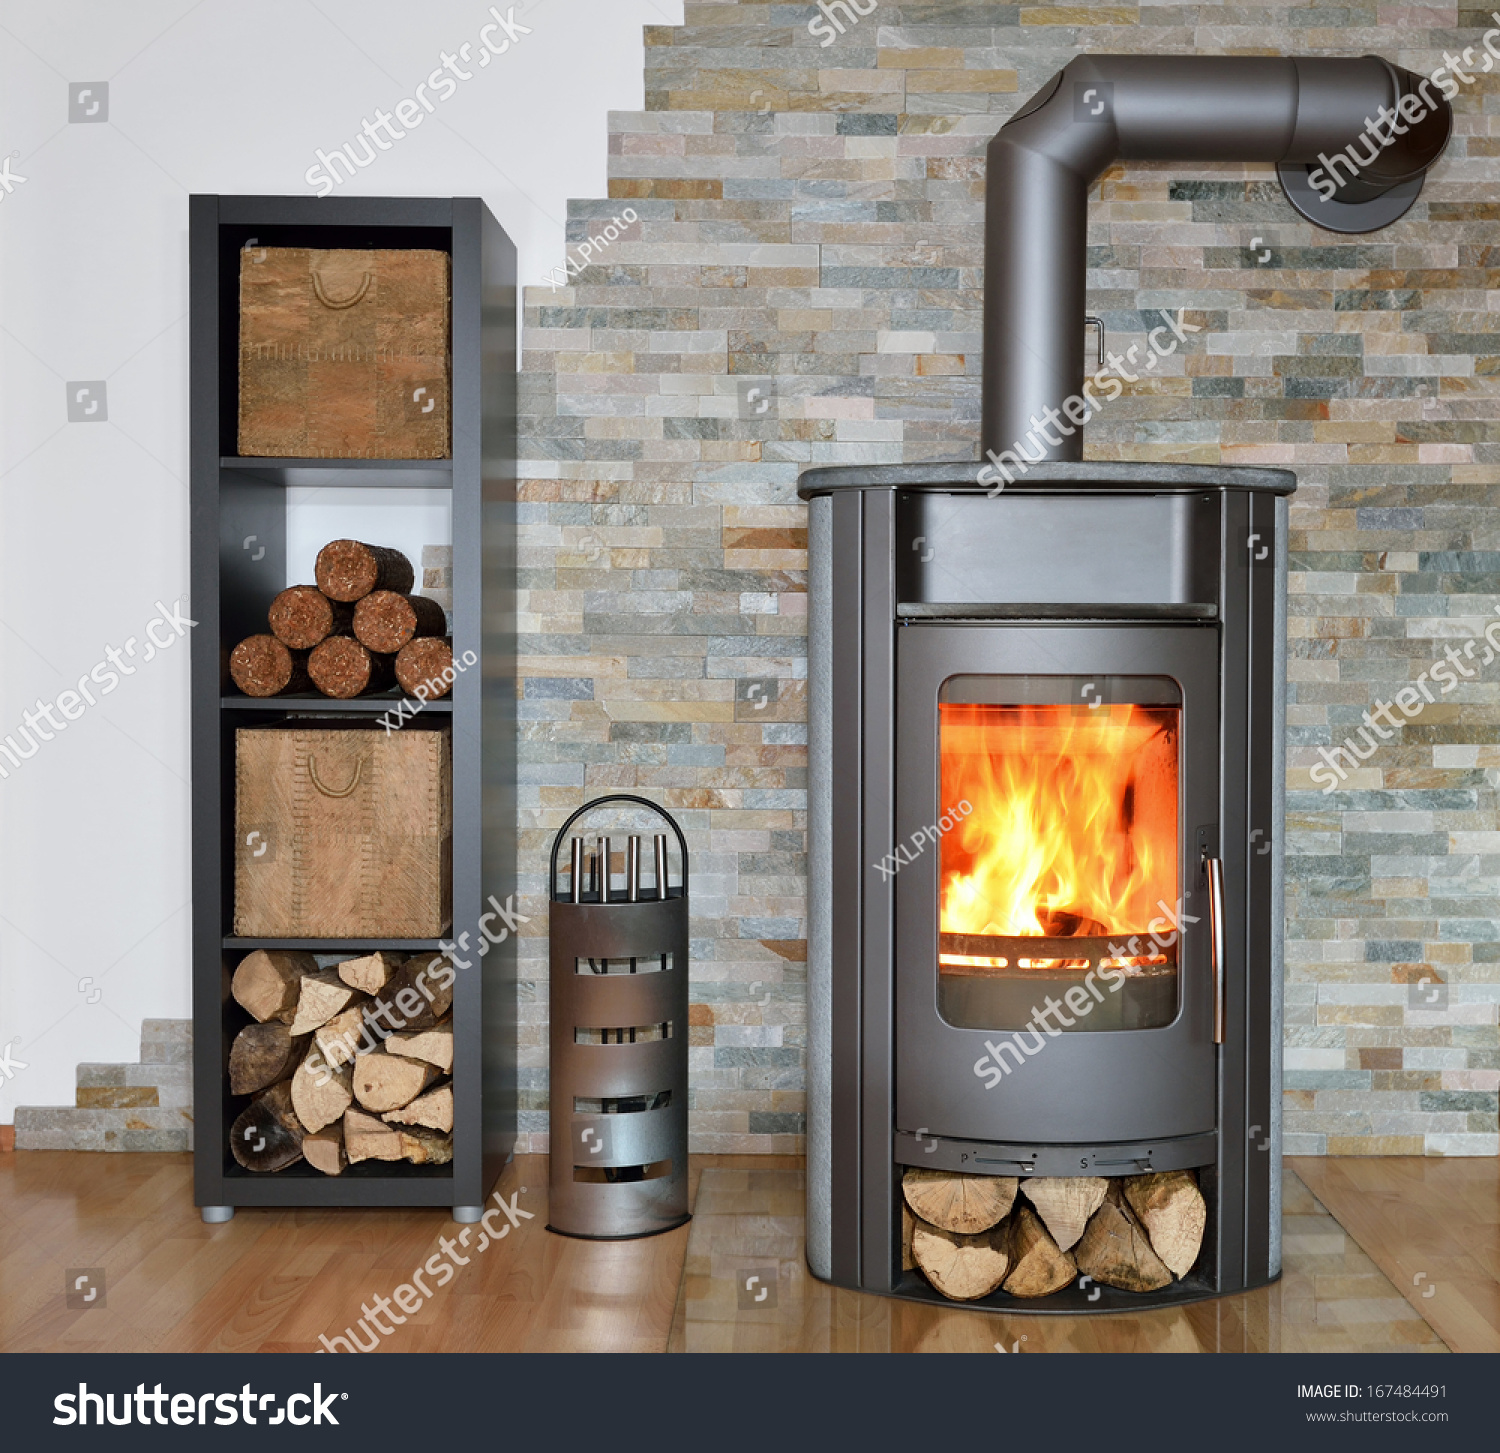 Briquettes For Wood Stove ~ Wood fired stove with fire irons and